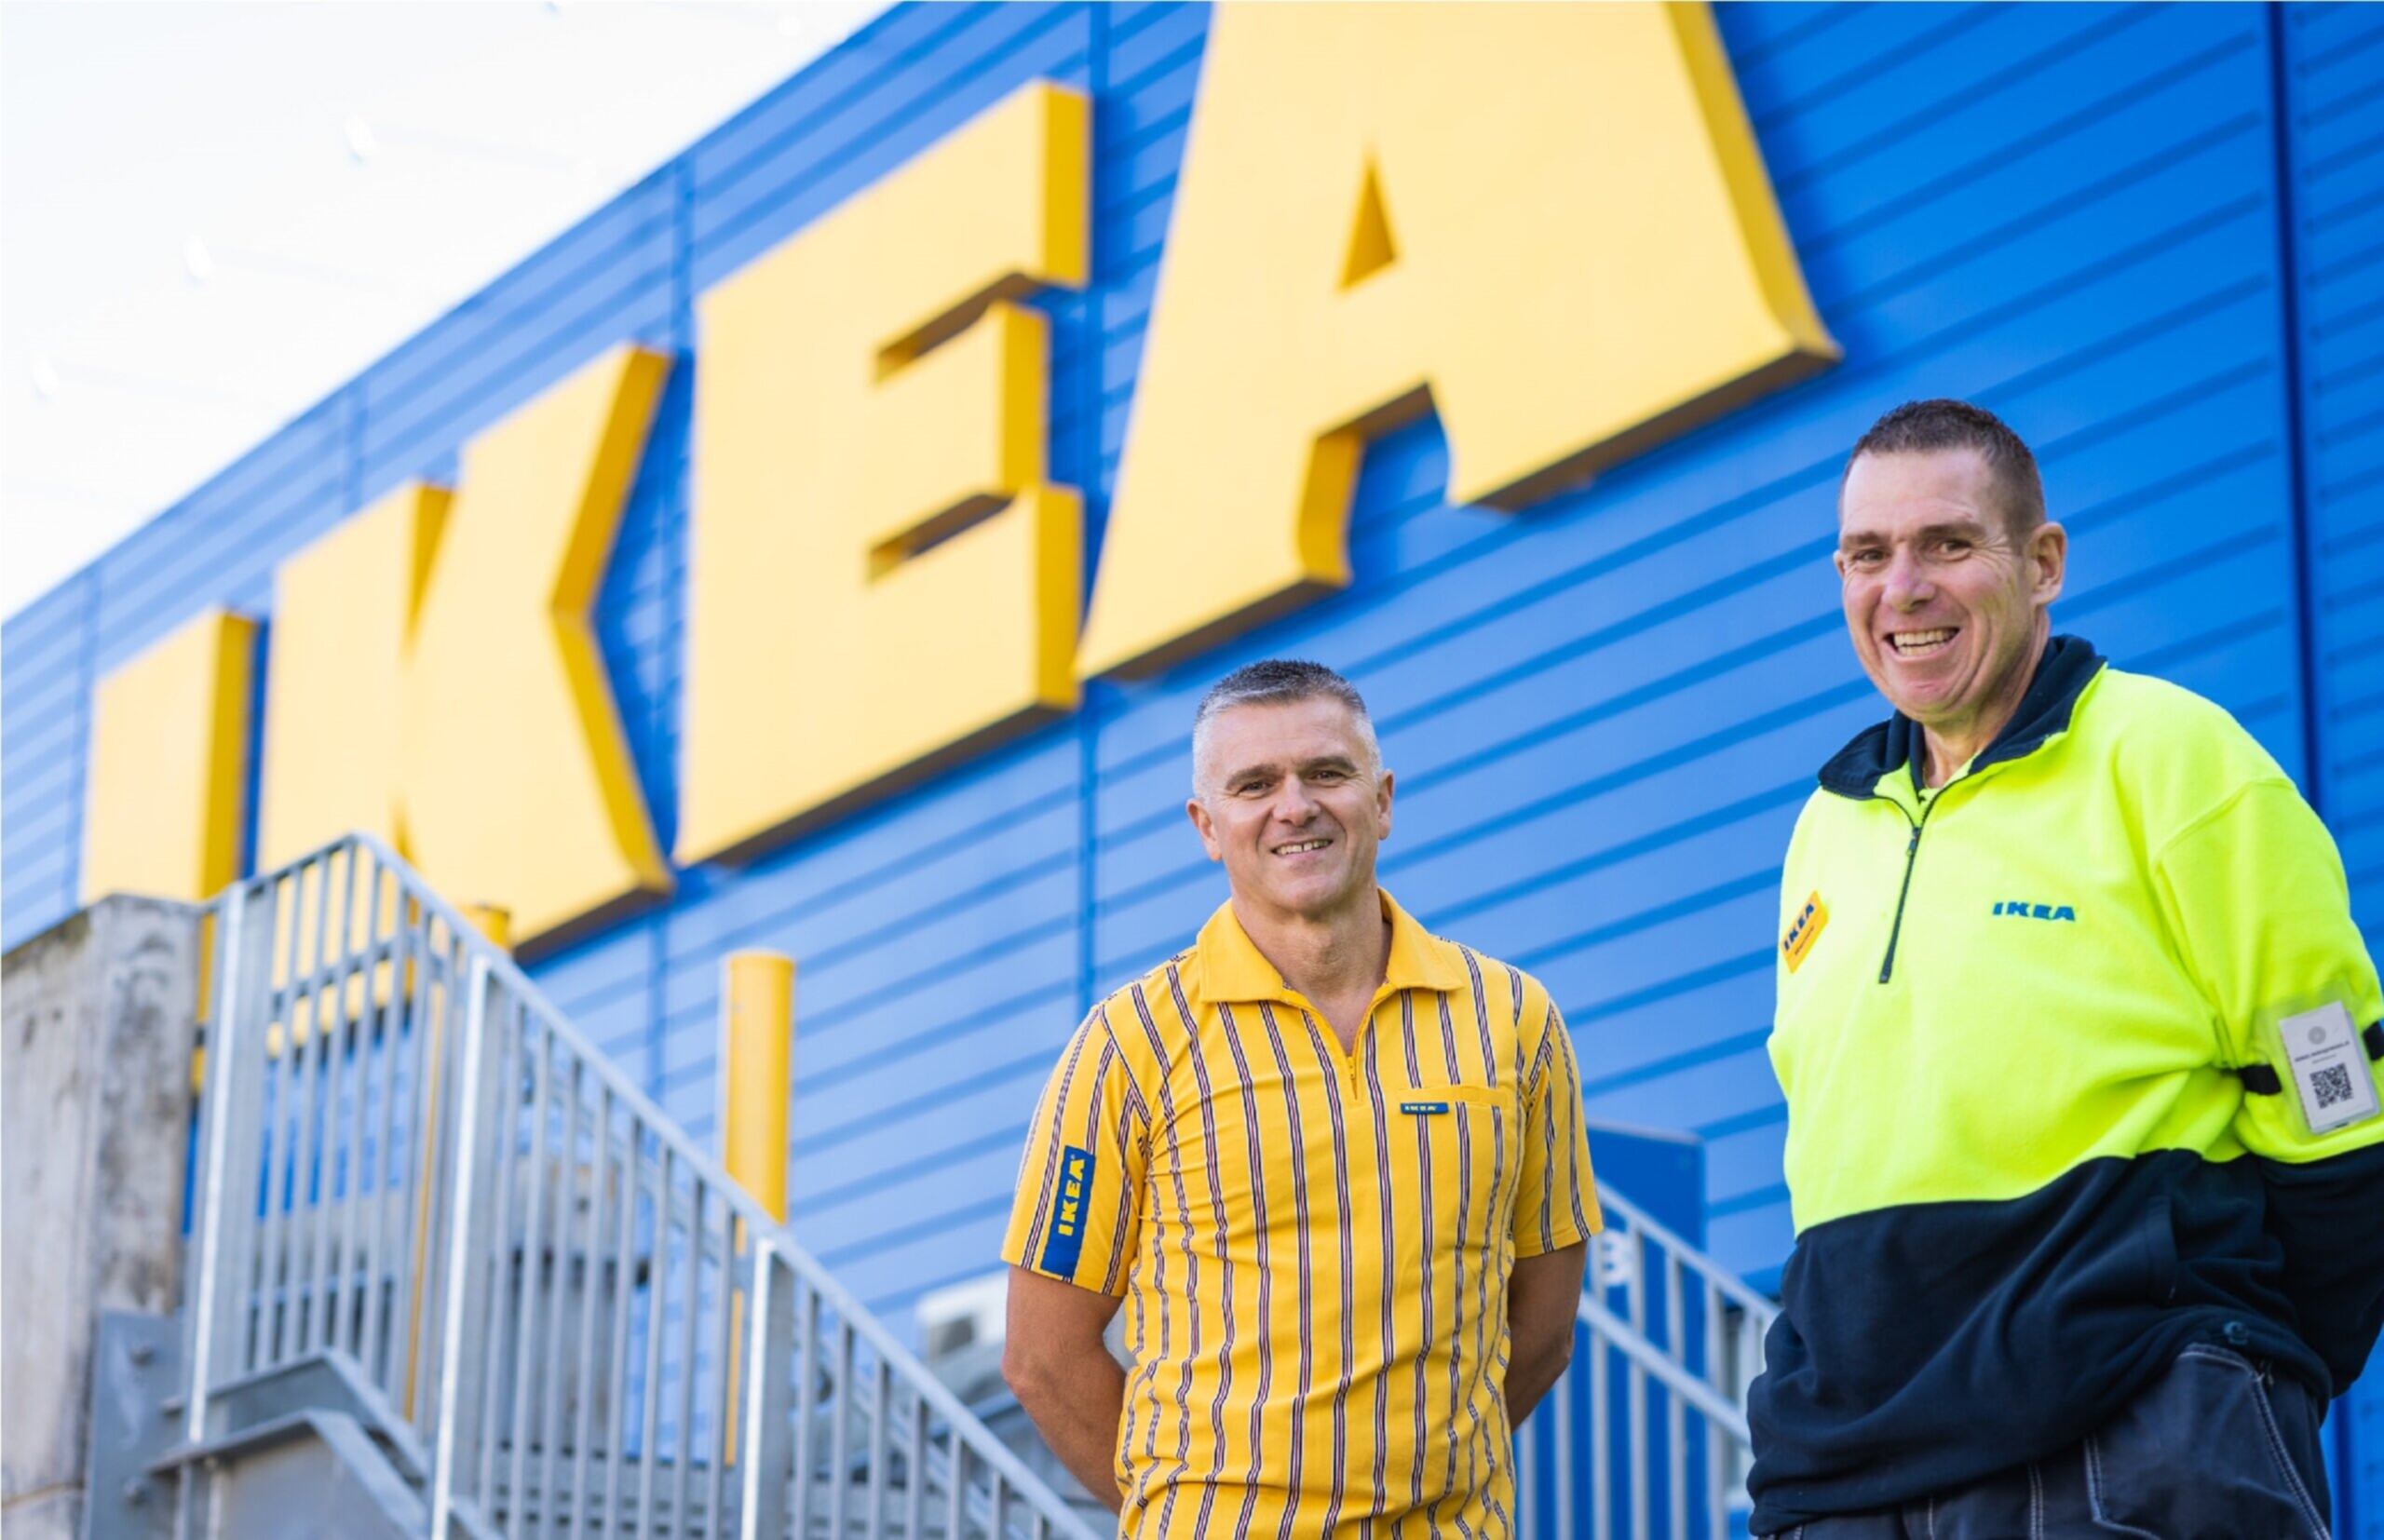 Renee stands in his high-vis IKEA jumper with his hands behind his back. He is standing outside the IKEA building and smiling at the camera.